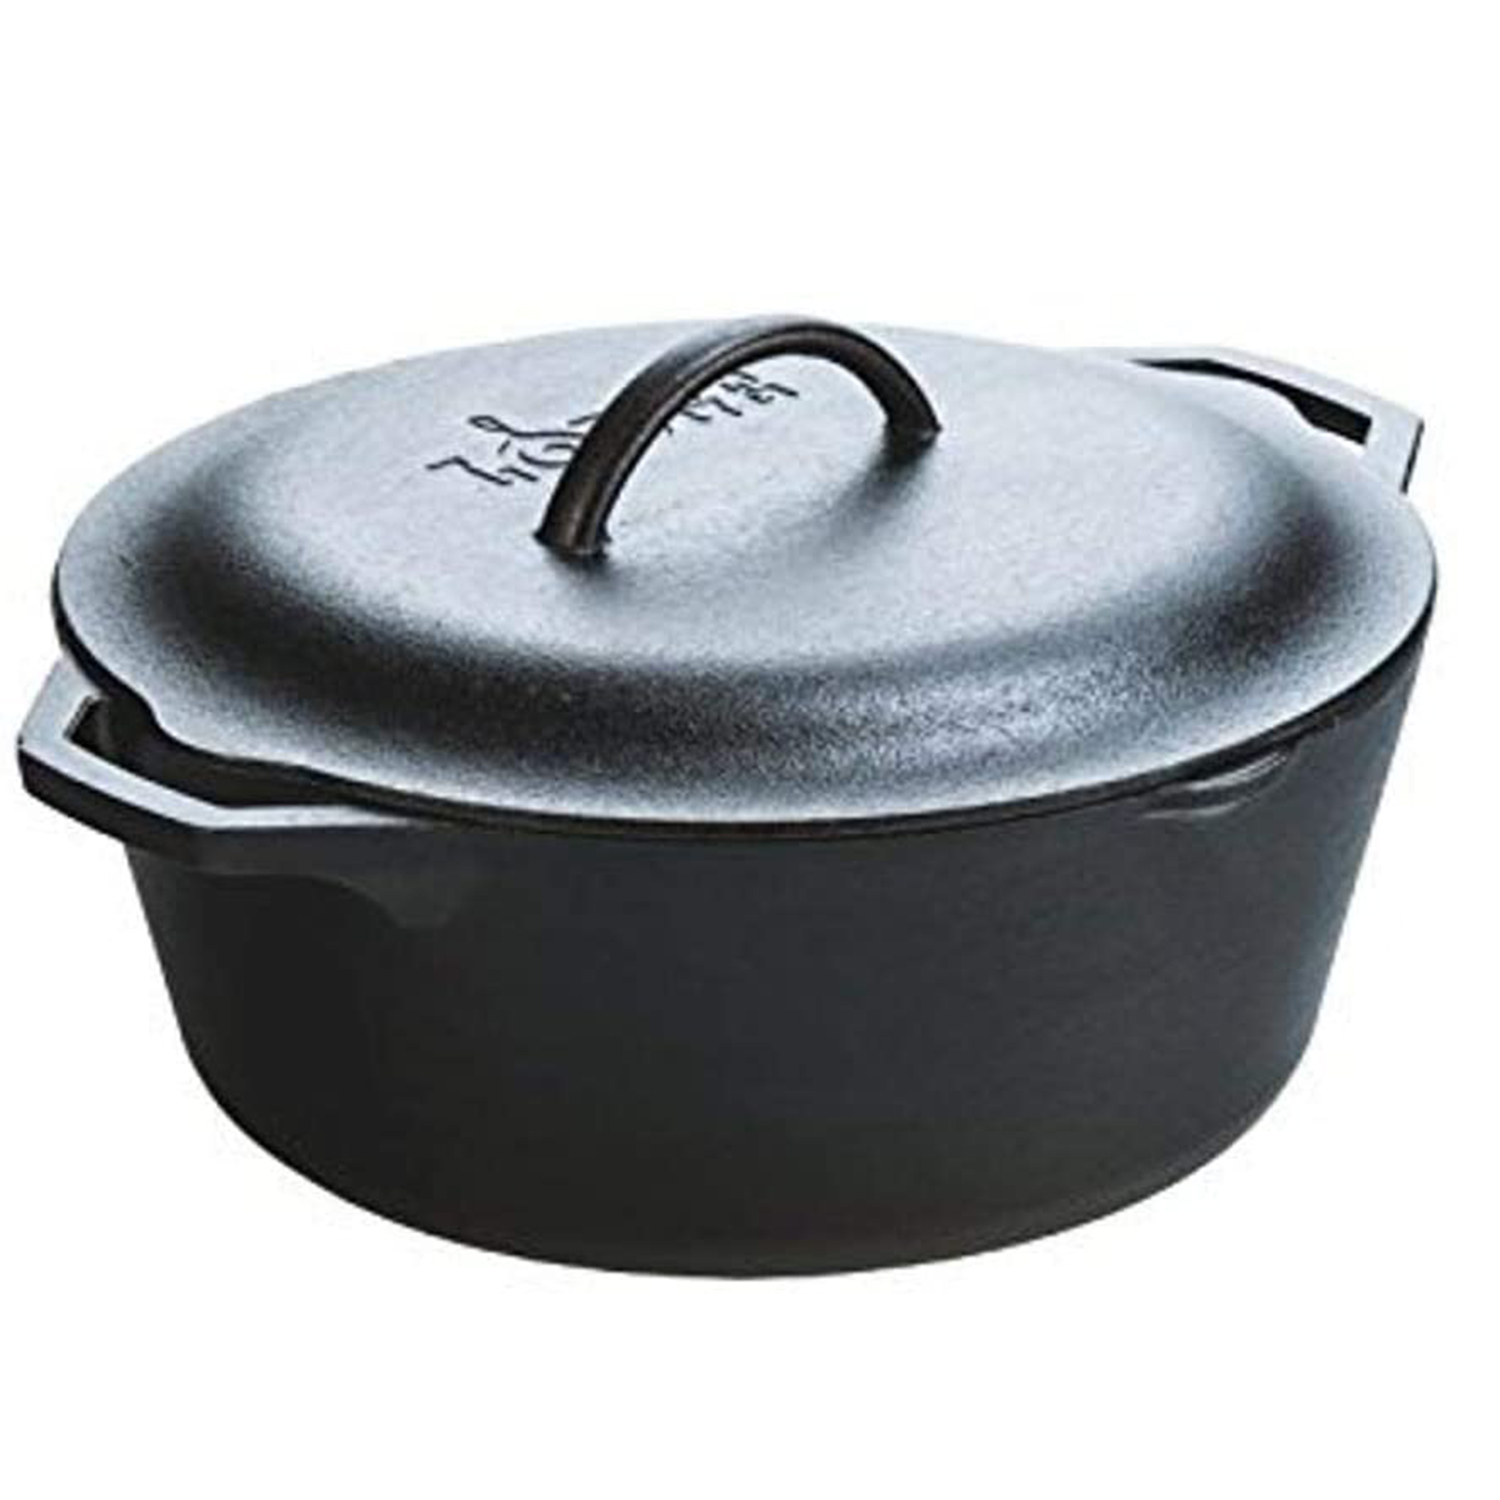 Lodge Pre-Seasoned Dutch Oven With Loop Handles and Cast Iron Cover